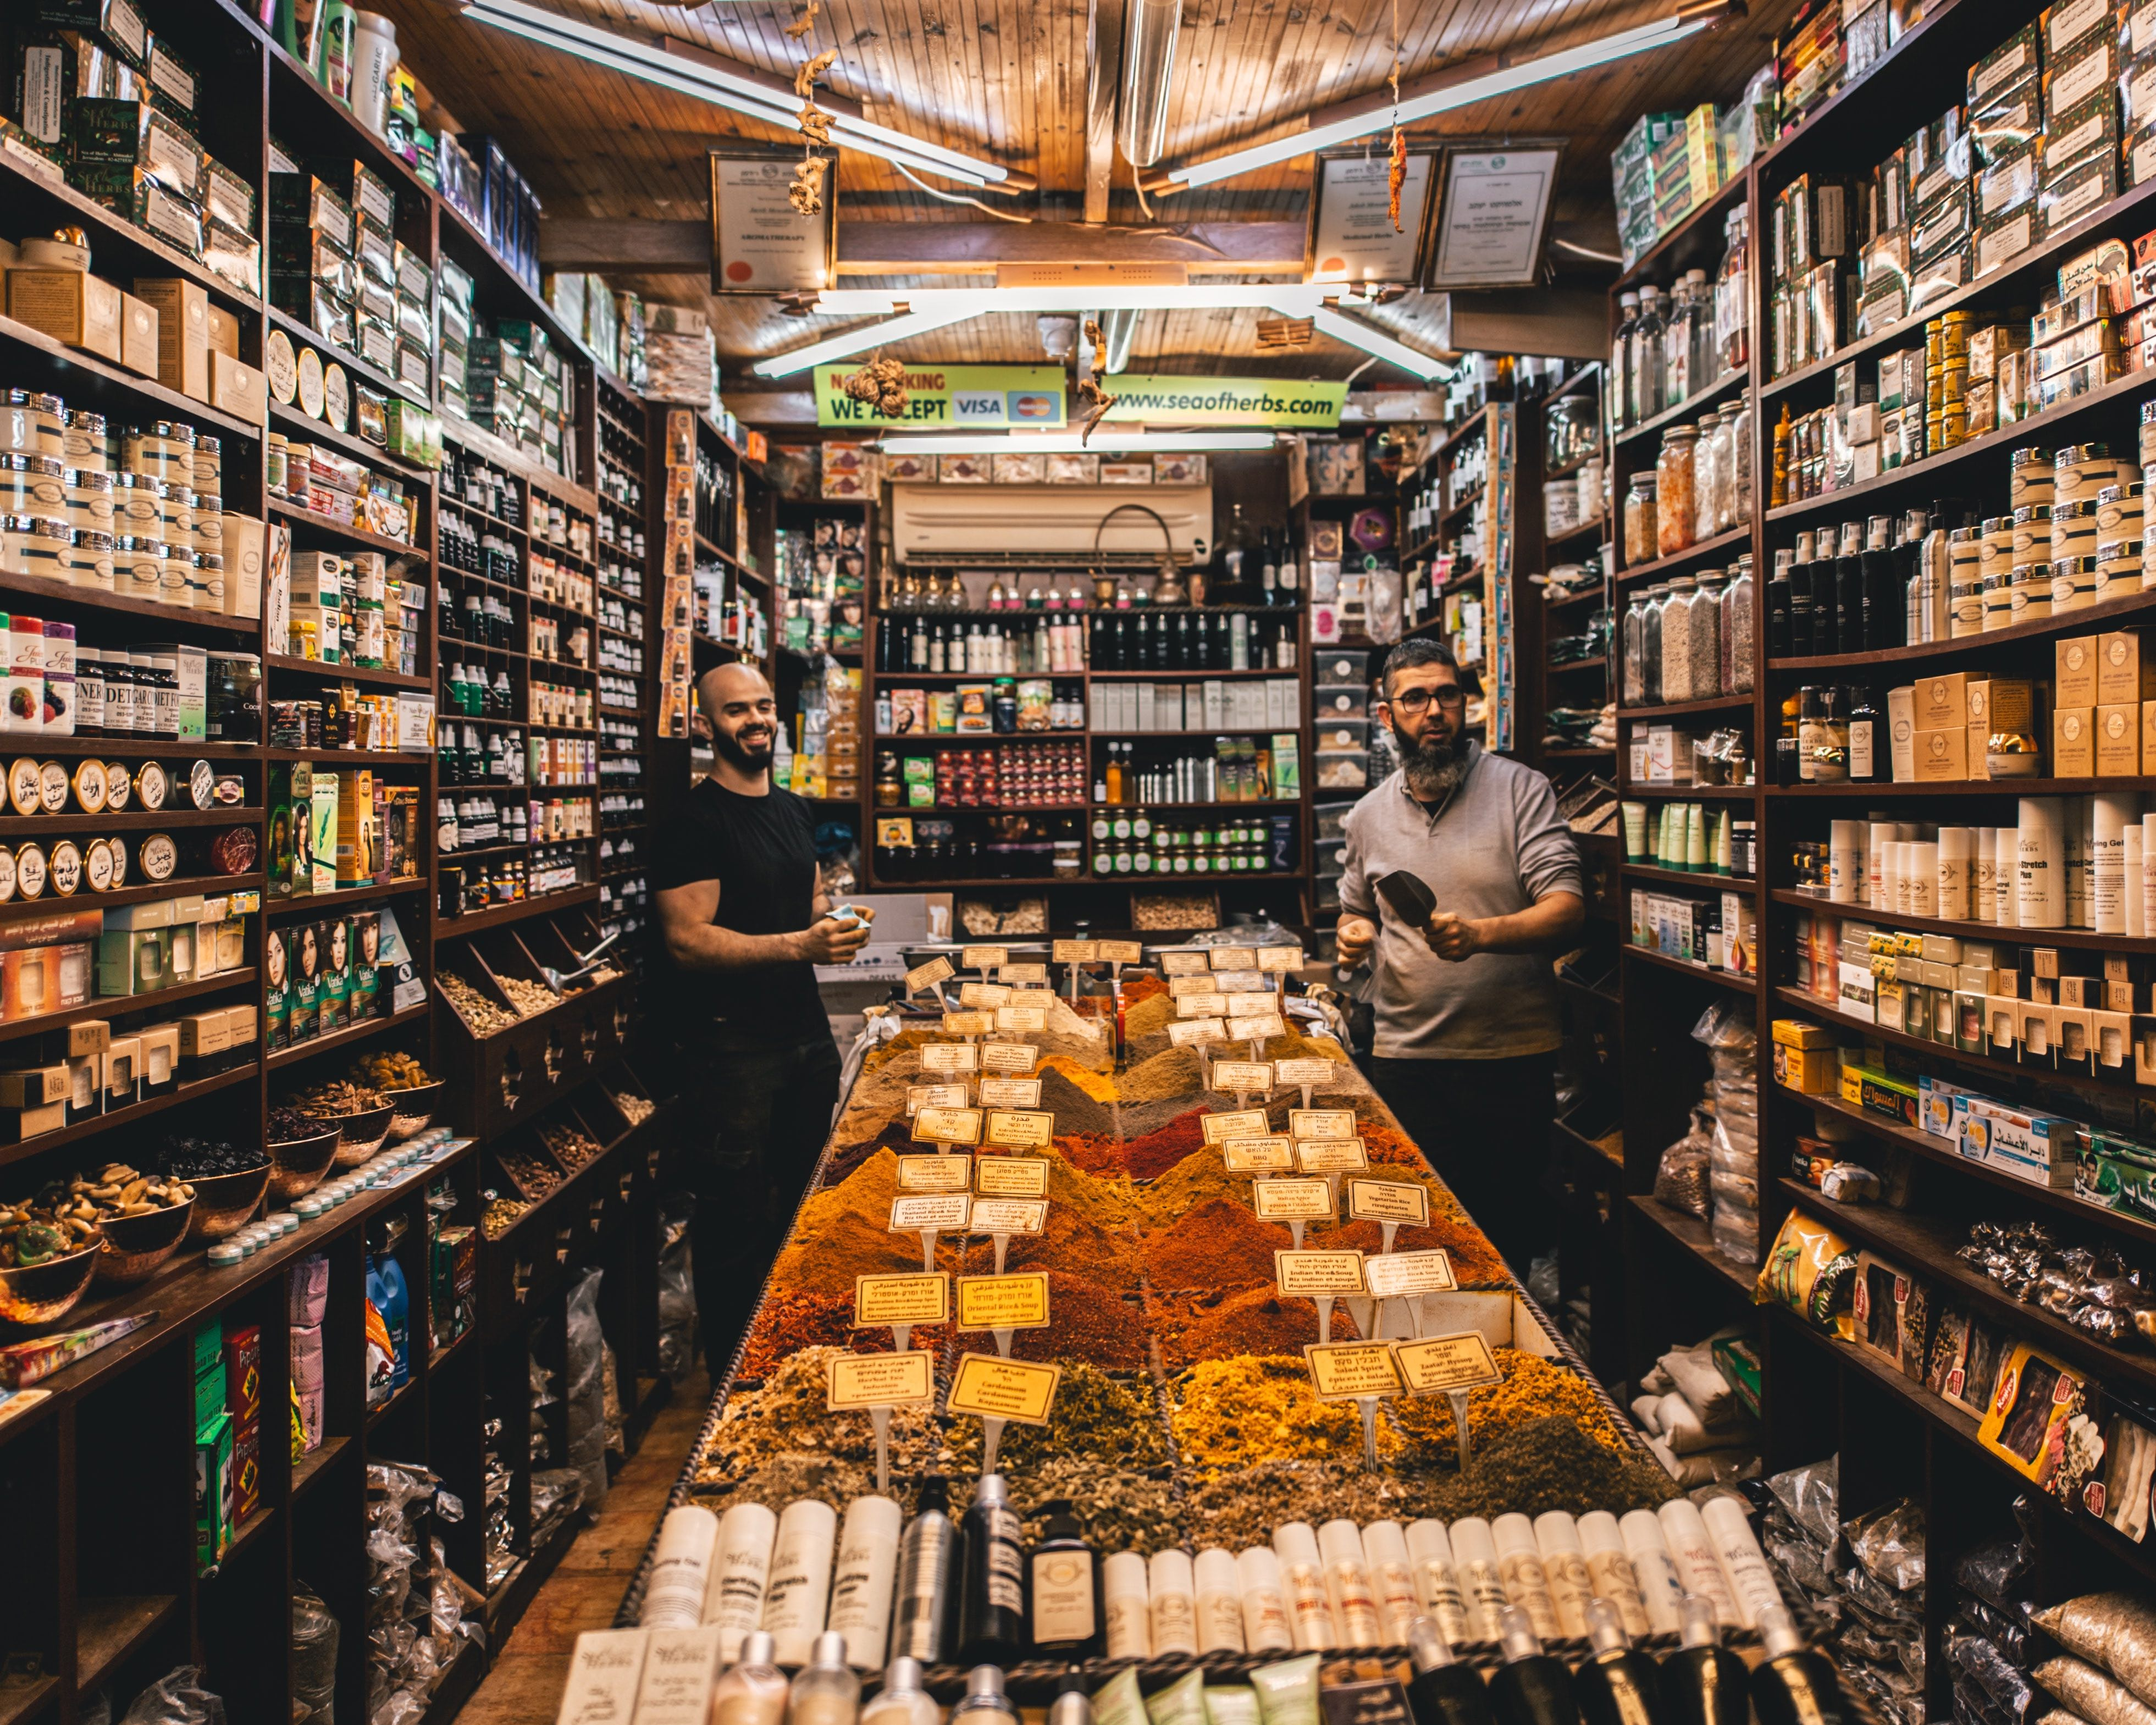 Keep the indie spirit alive in local bottle shops